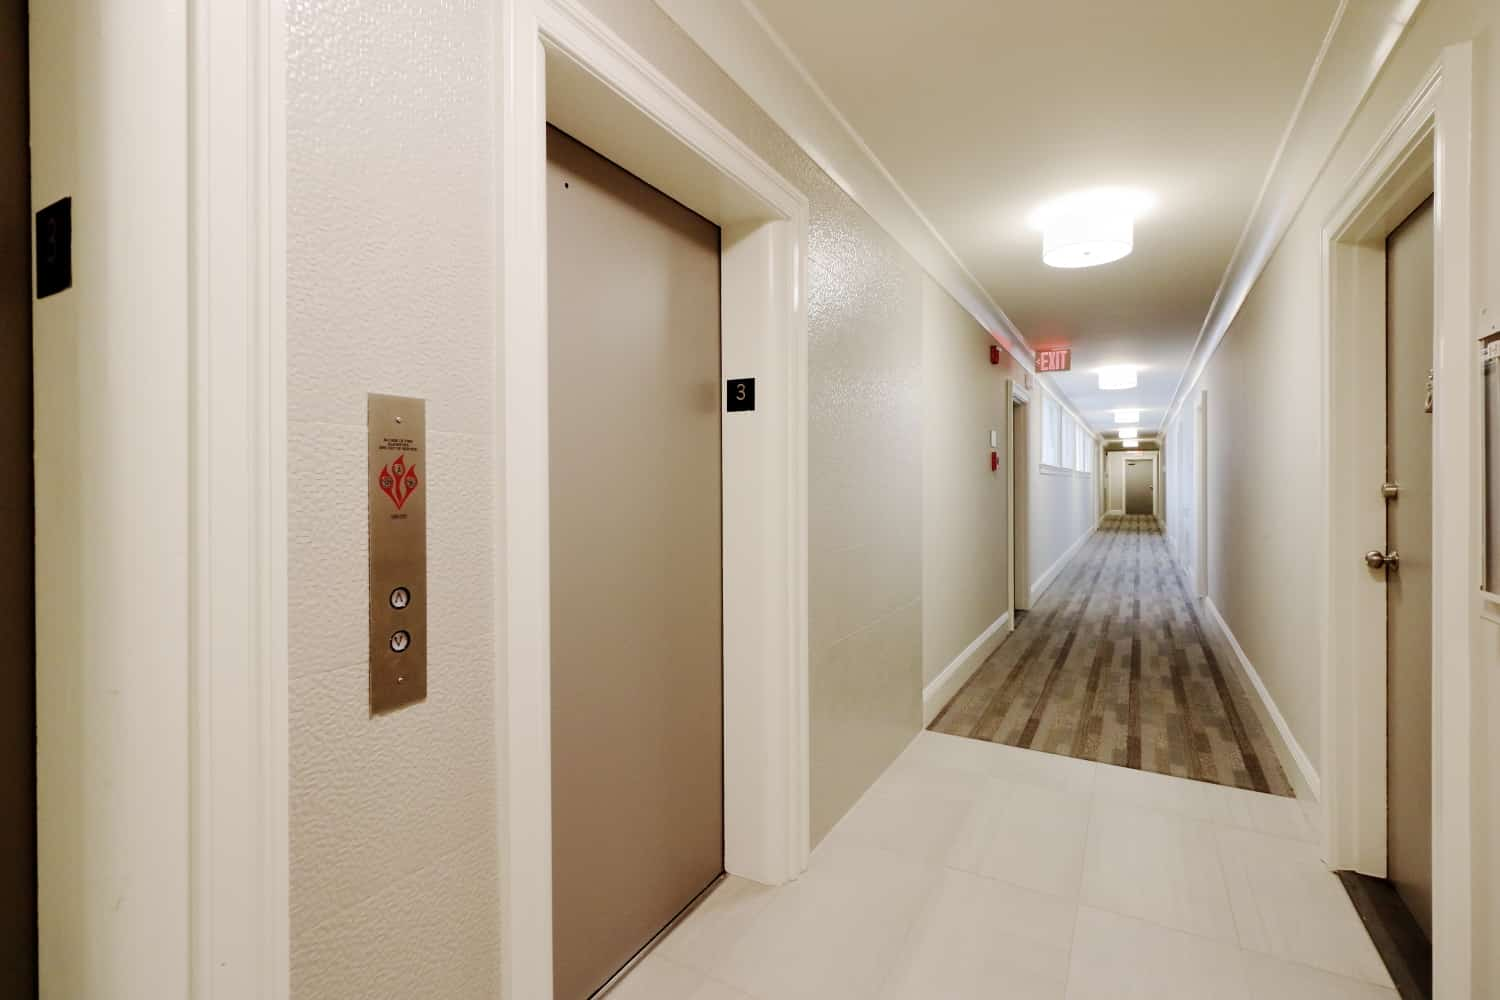 M Street Tower Apartment Building Hallway